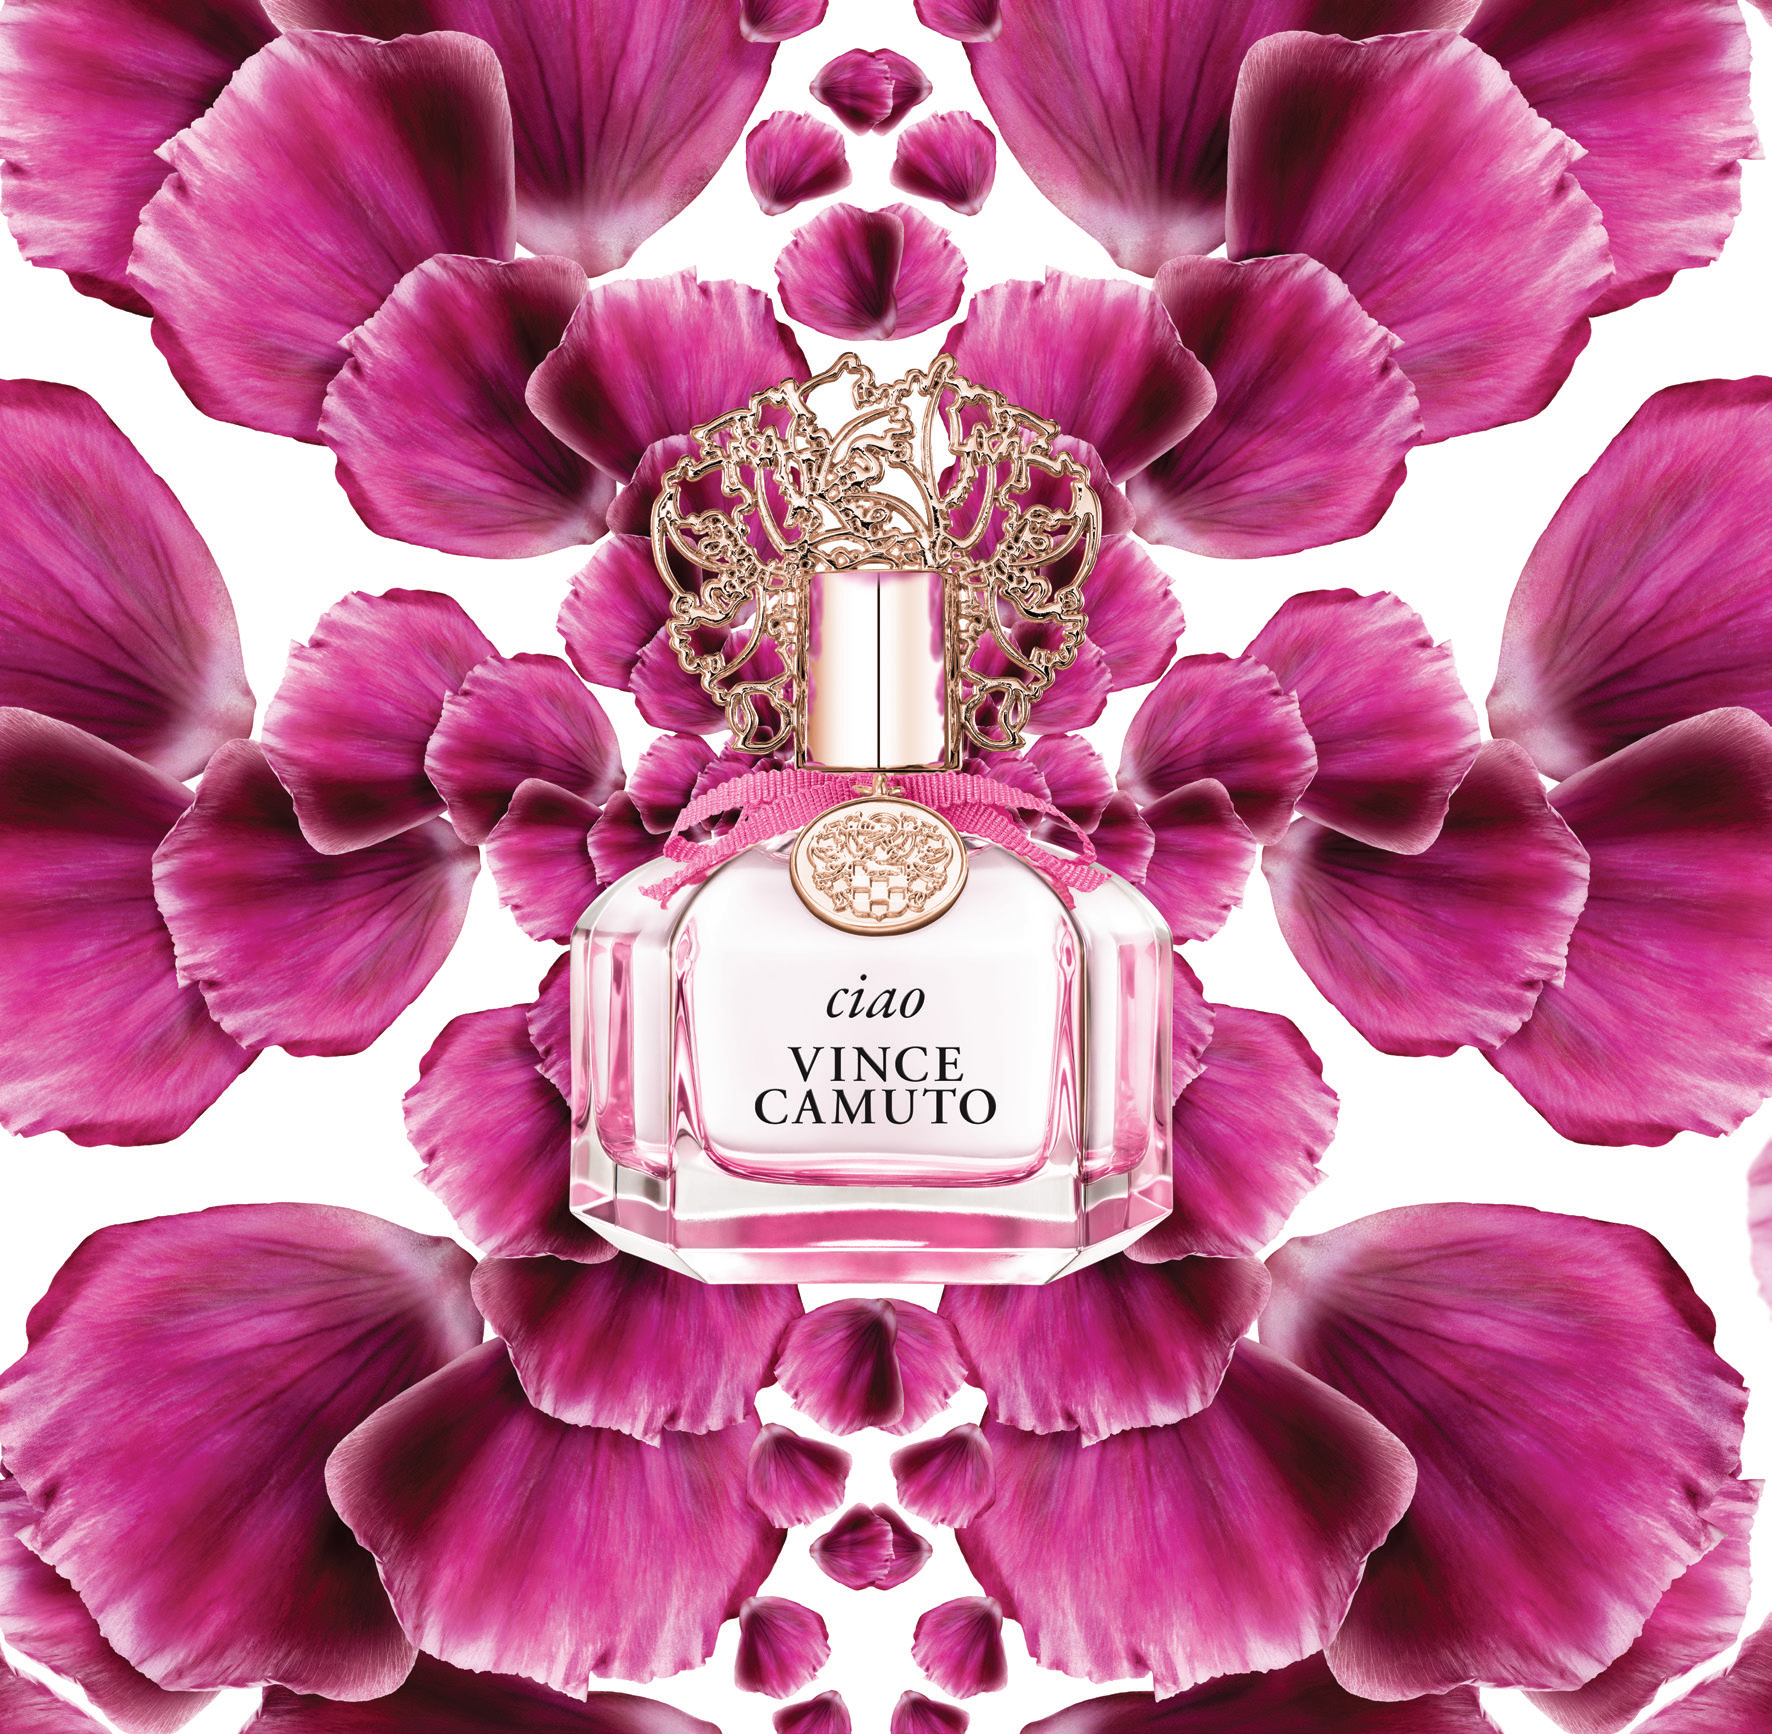 Introducing: Ciao and Terra, New Fragrances by Vince Camuto